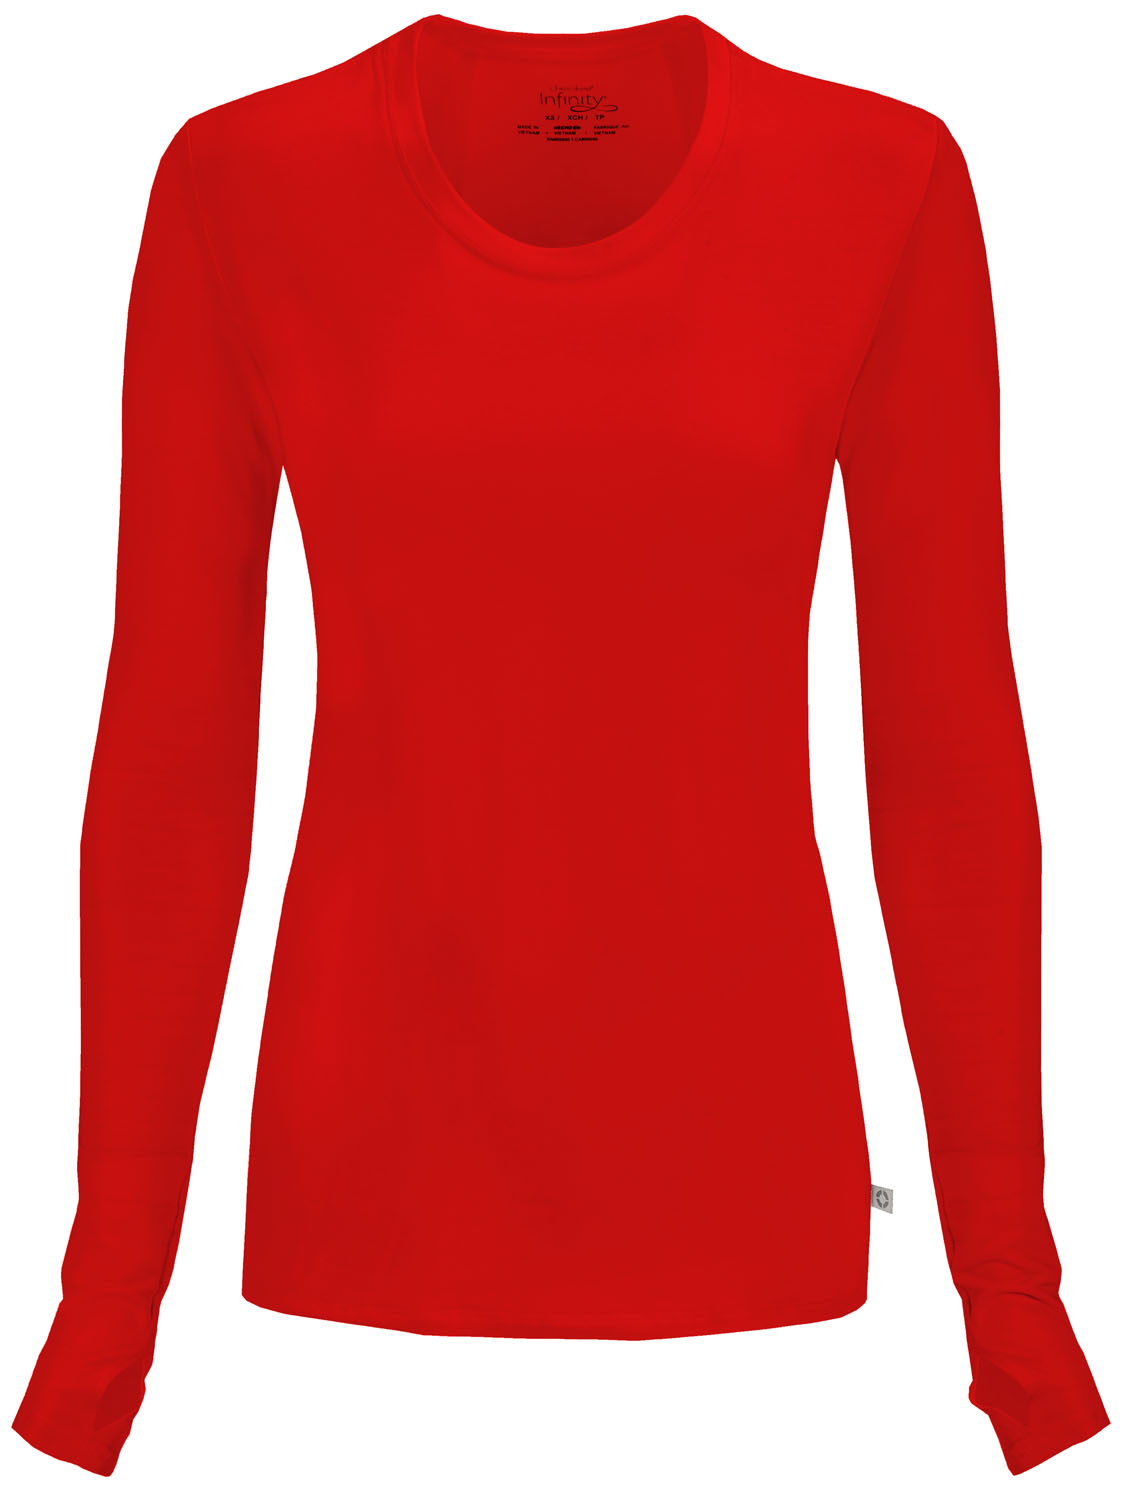 ab43a7129f5 Infinity Long Sleeve Underscrub Knit Tee in Red 2626A-RED from ...